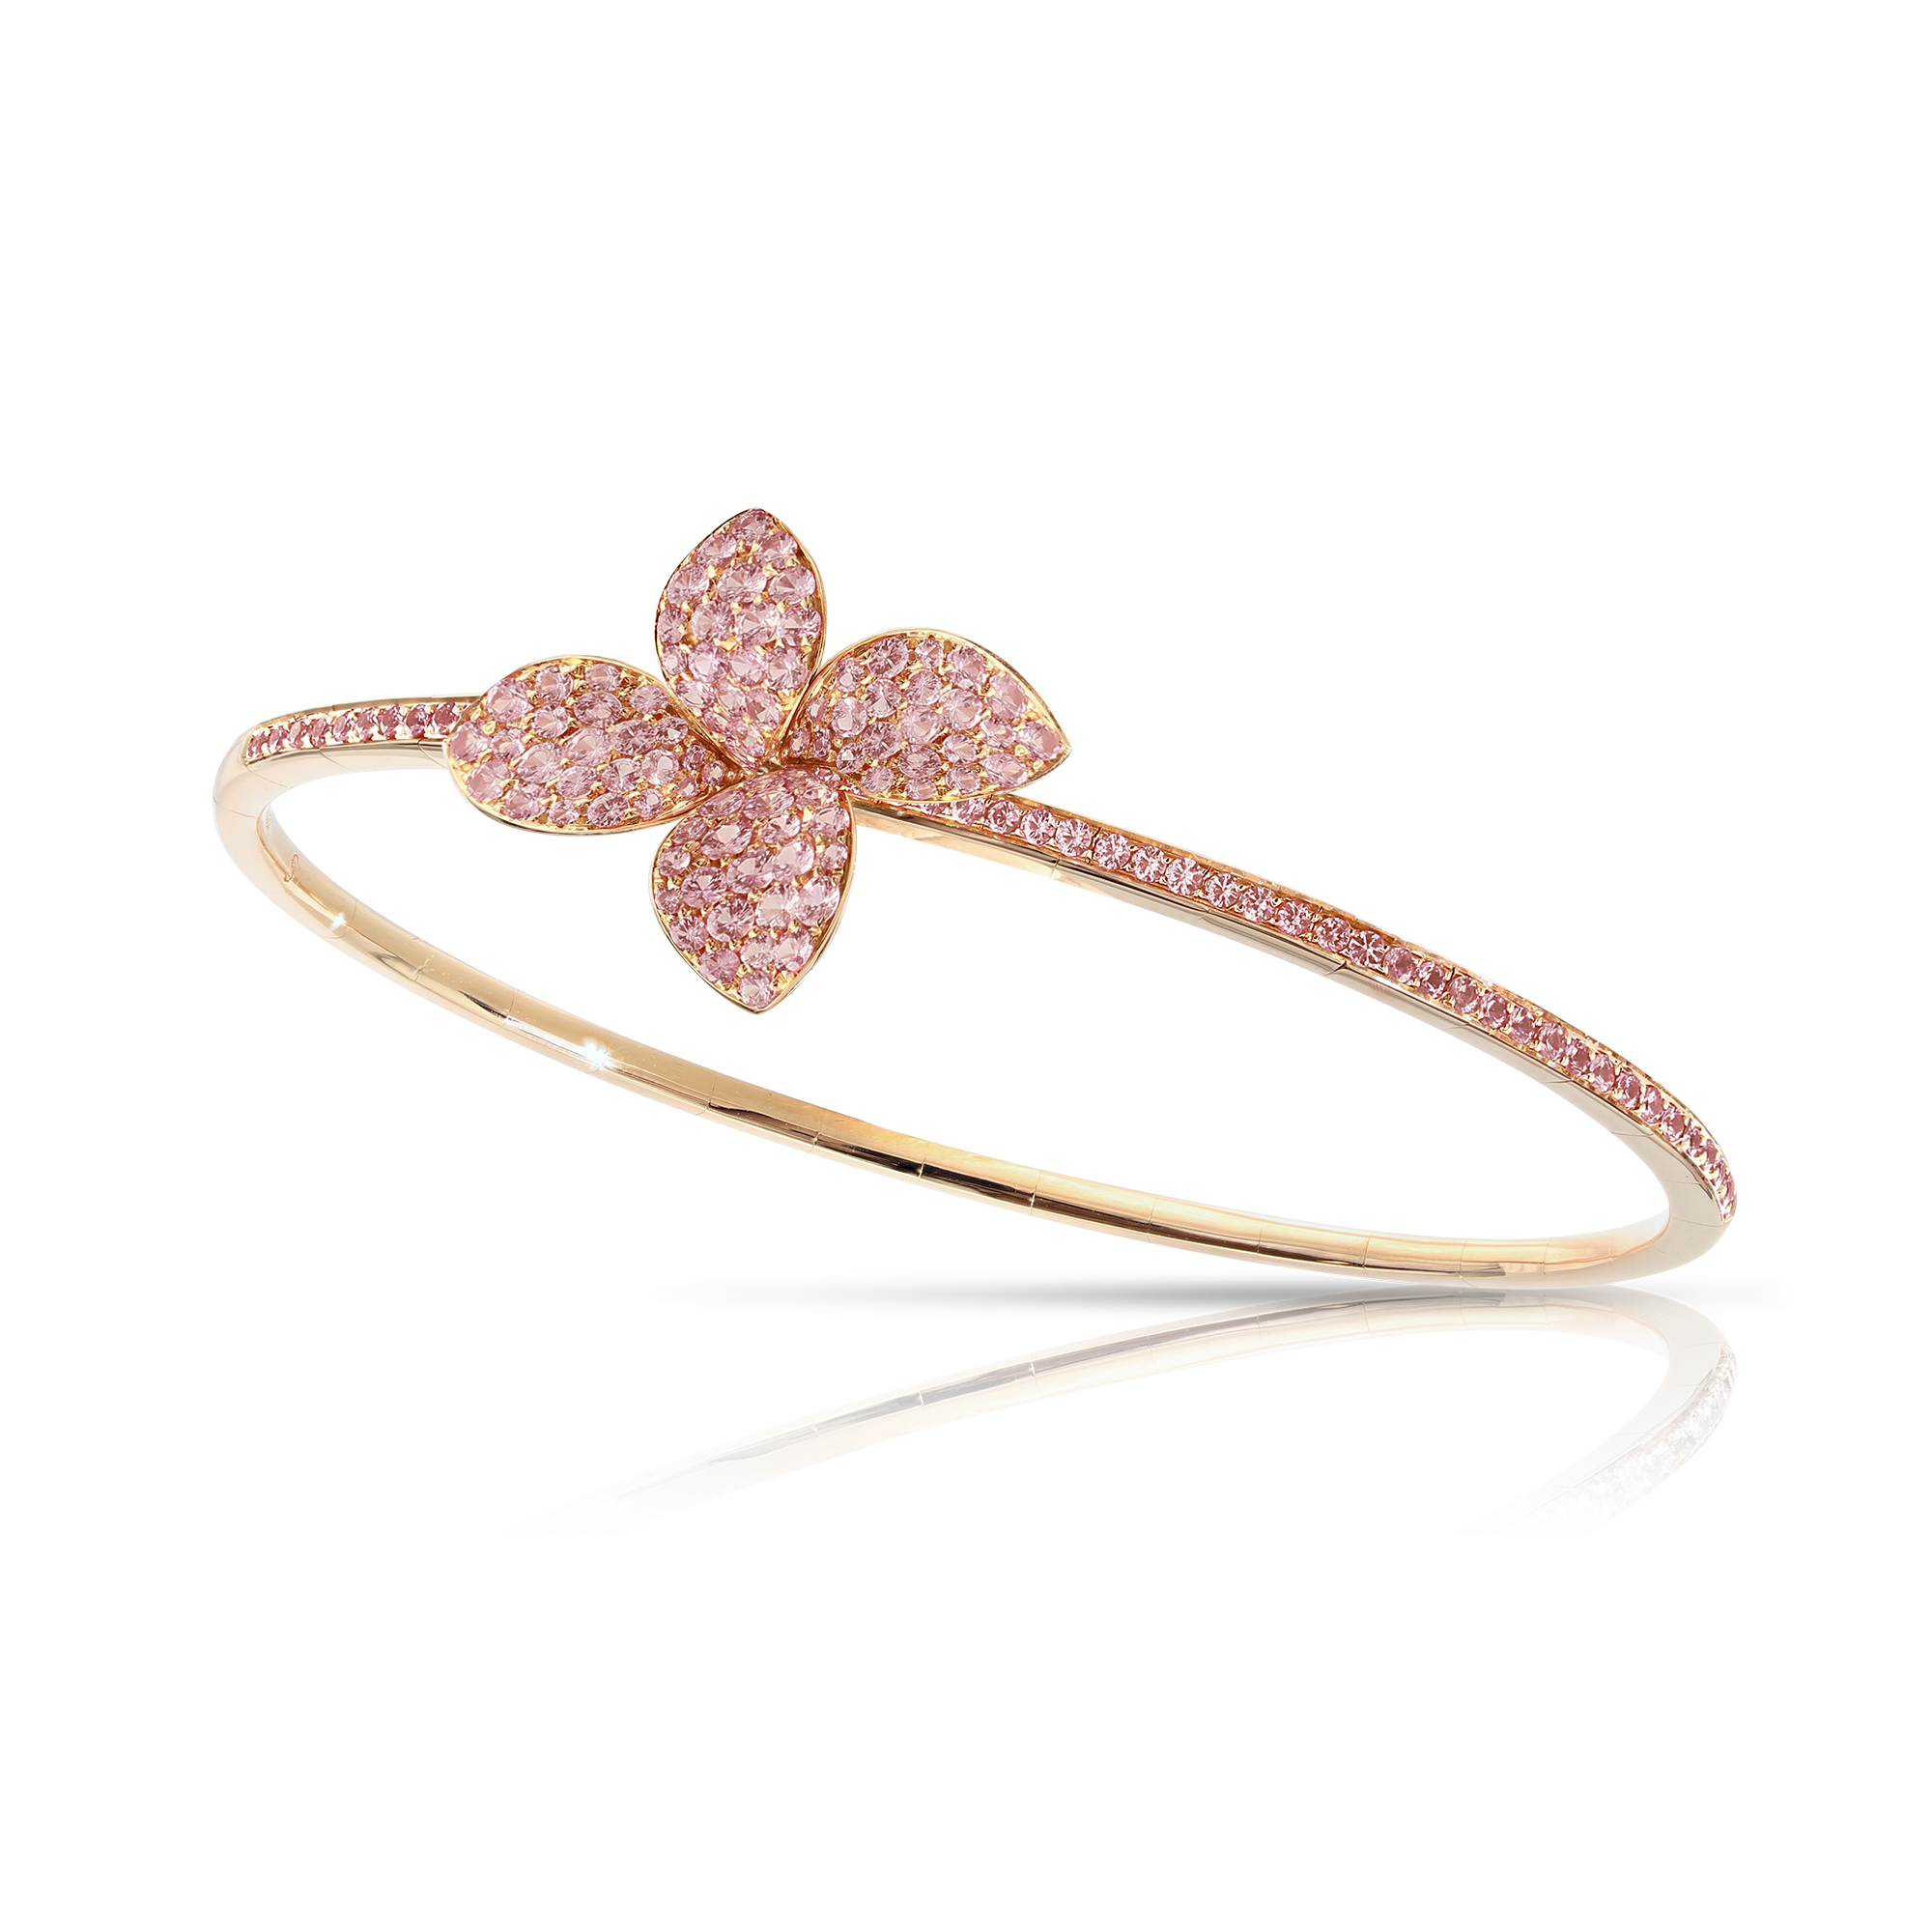 NEW 18k Rose Gold Petit Garden Bracelet with Pink Sapphires